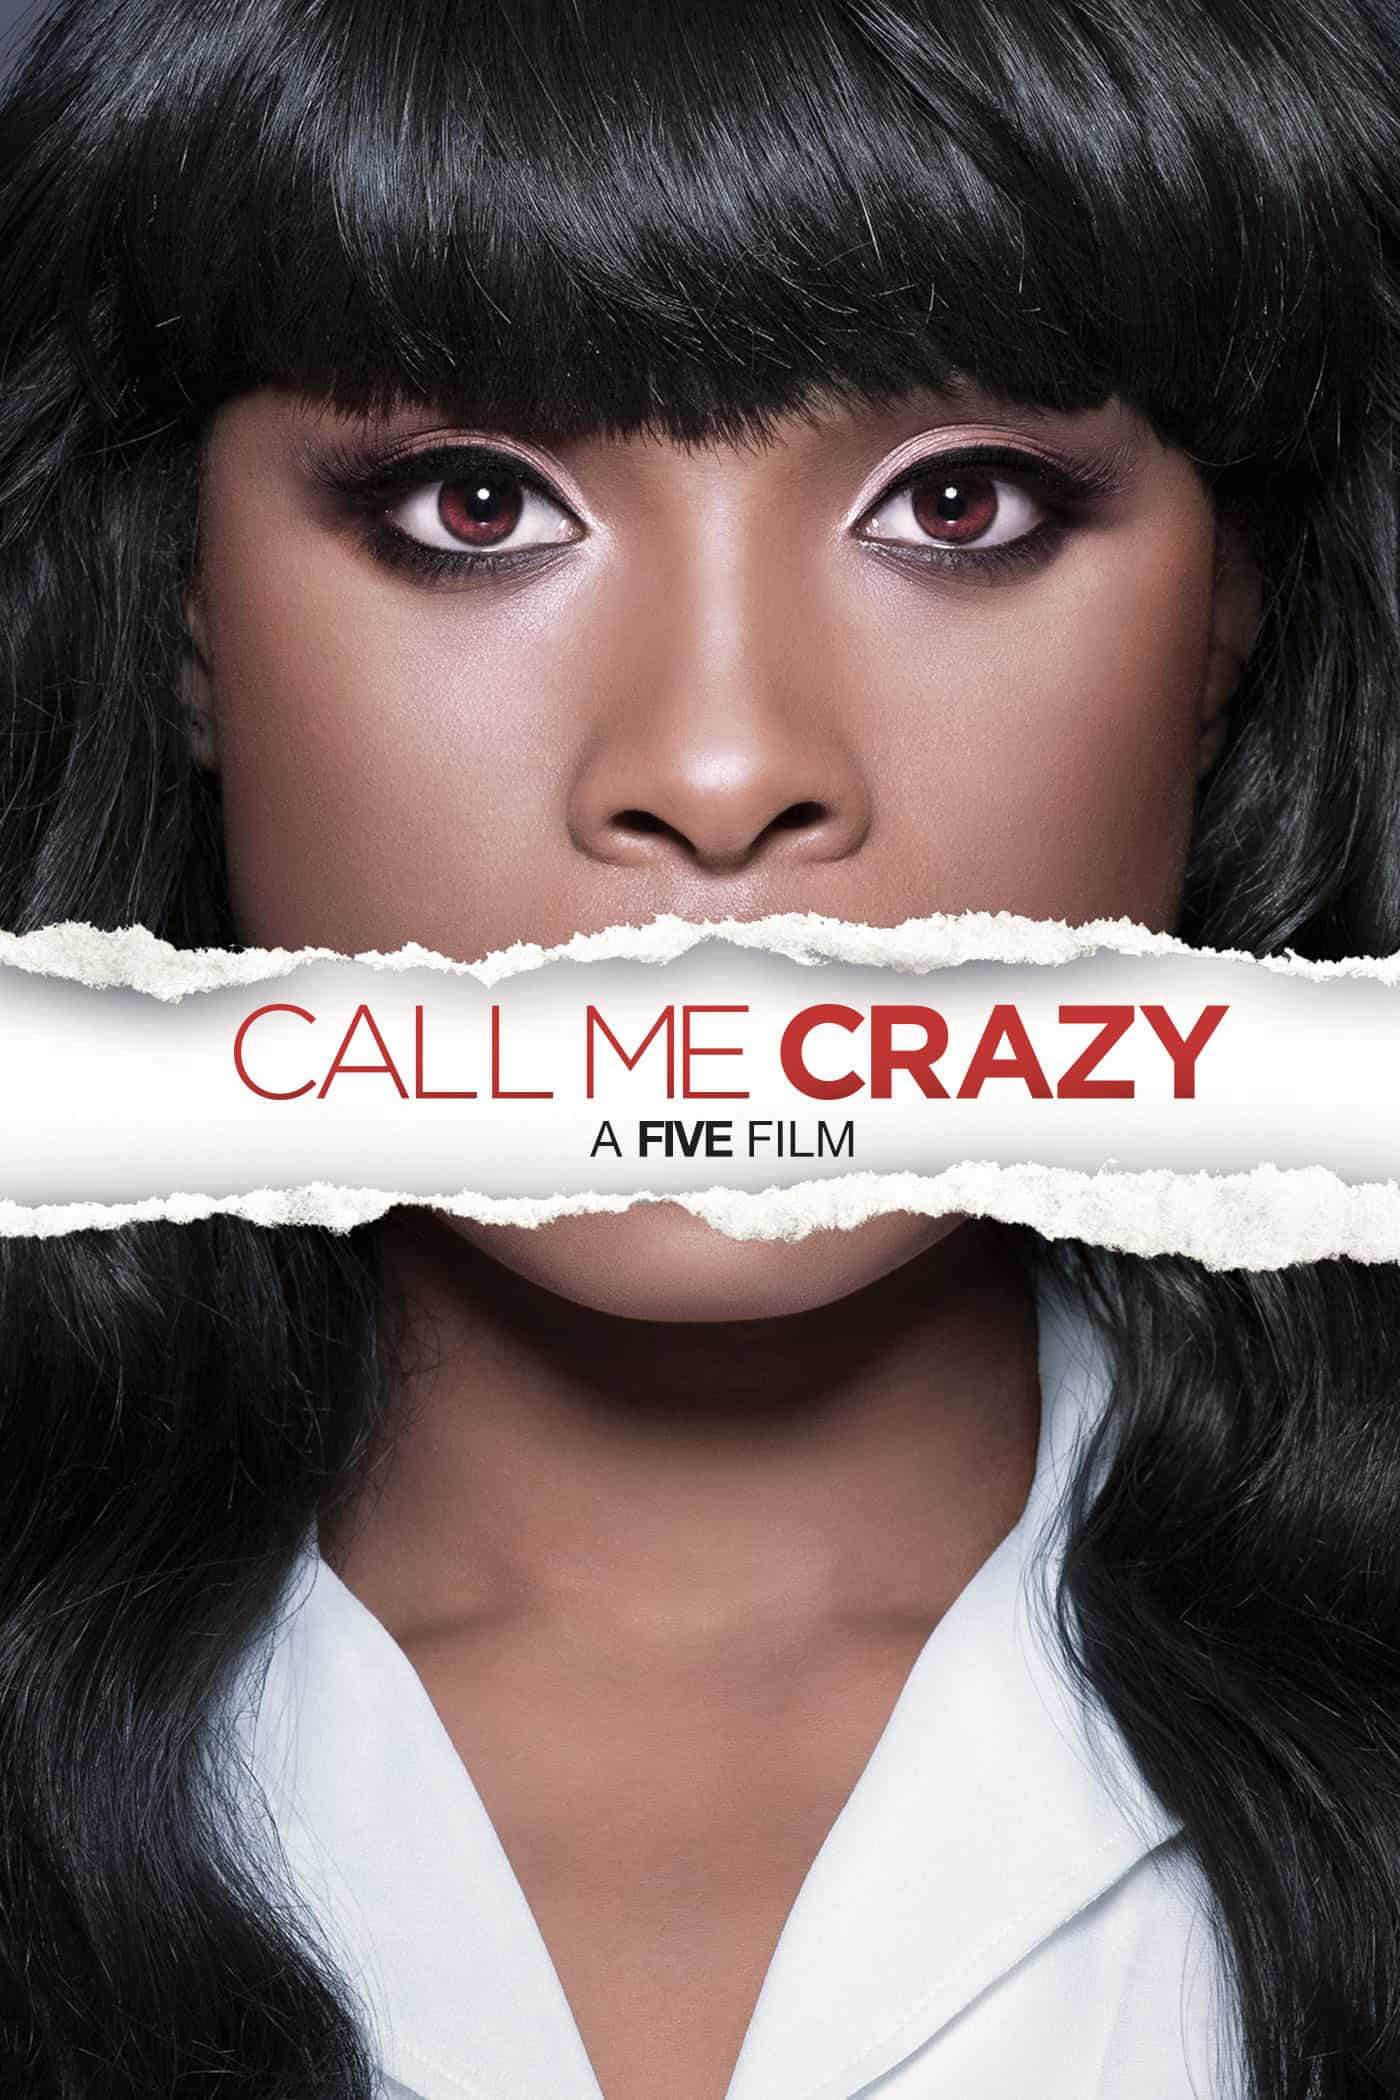 Call Me Crazy: A Five Film, 2013